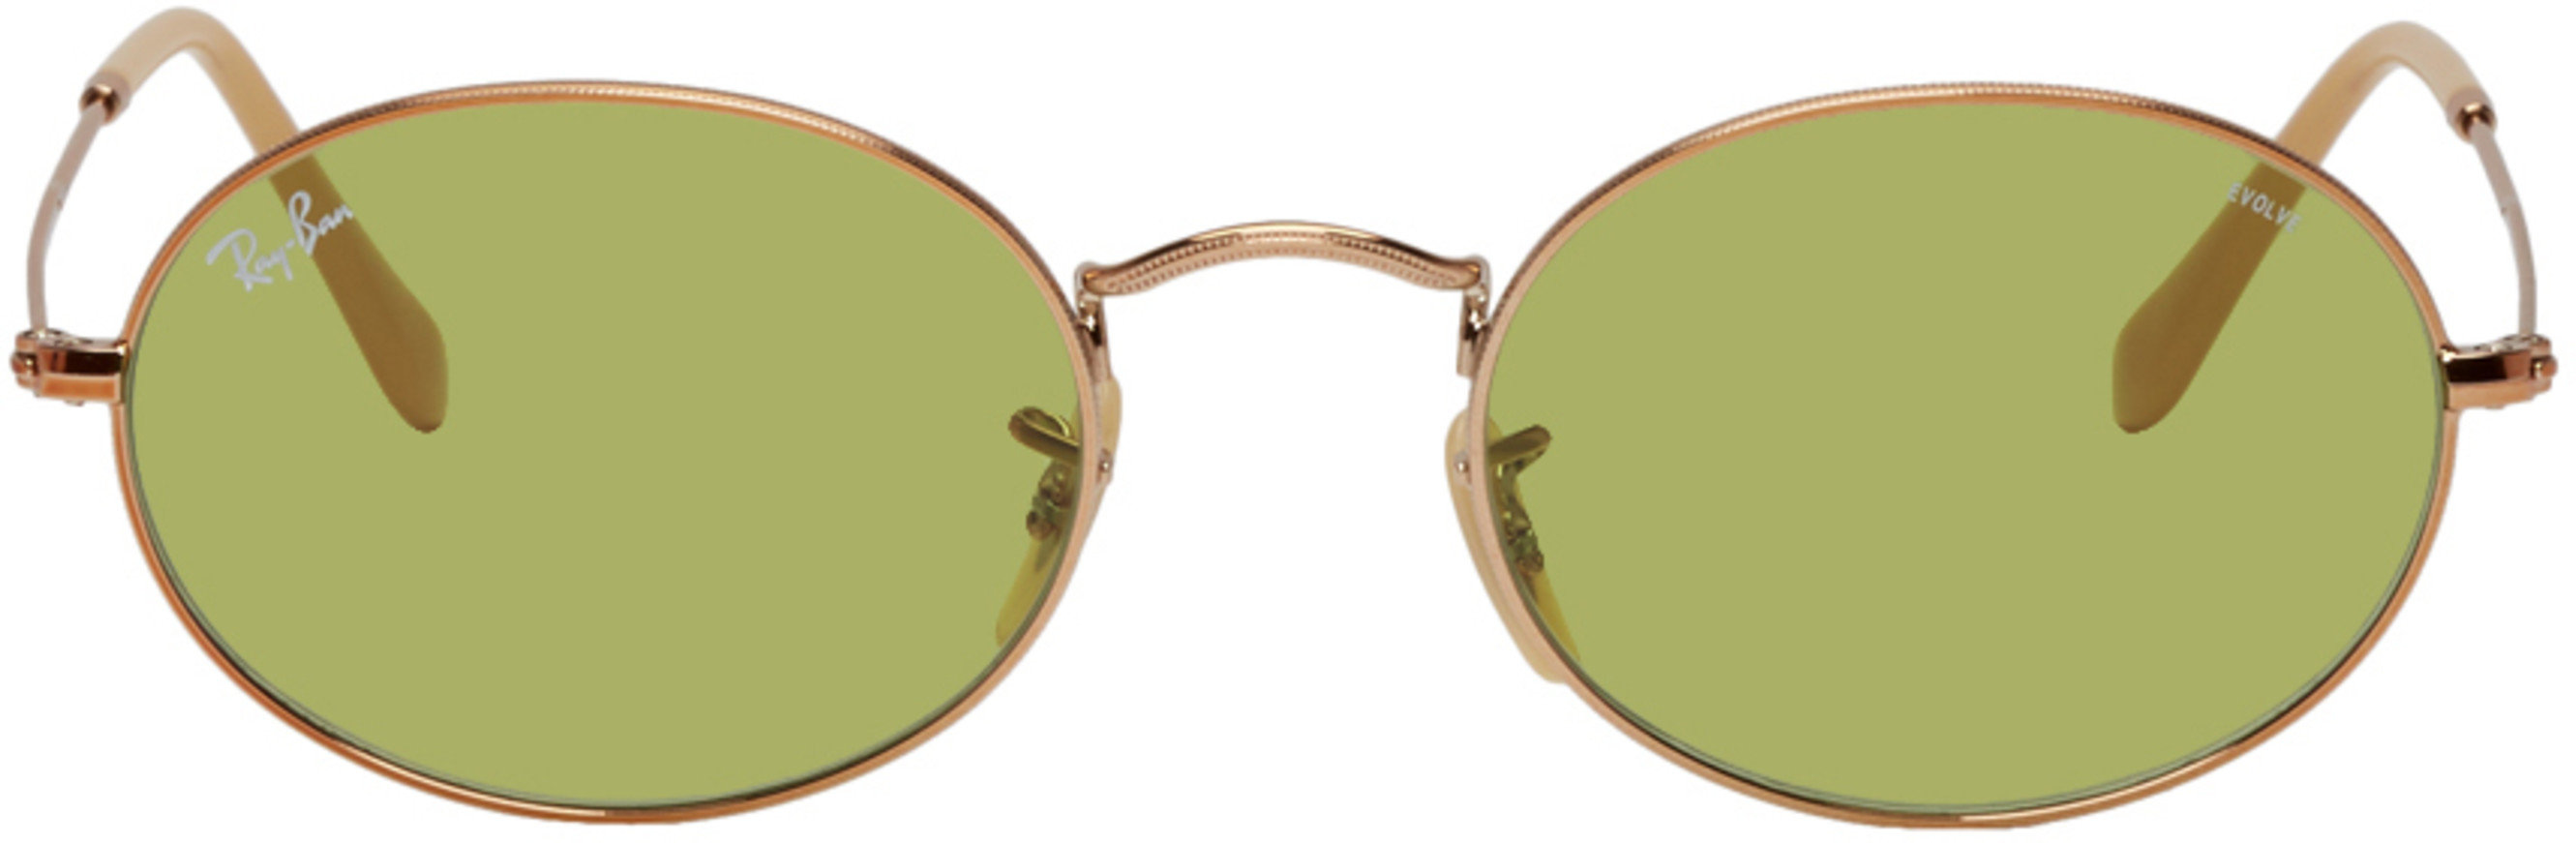 0d23191216340 Ray-ban for Men SS19 Collection